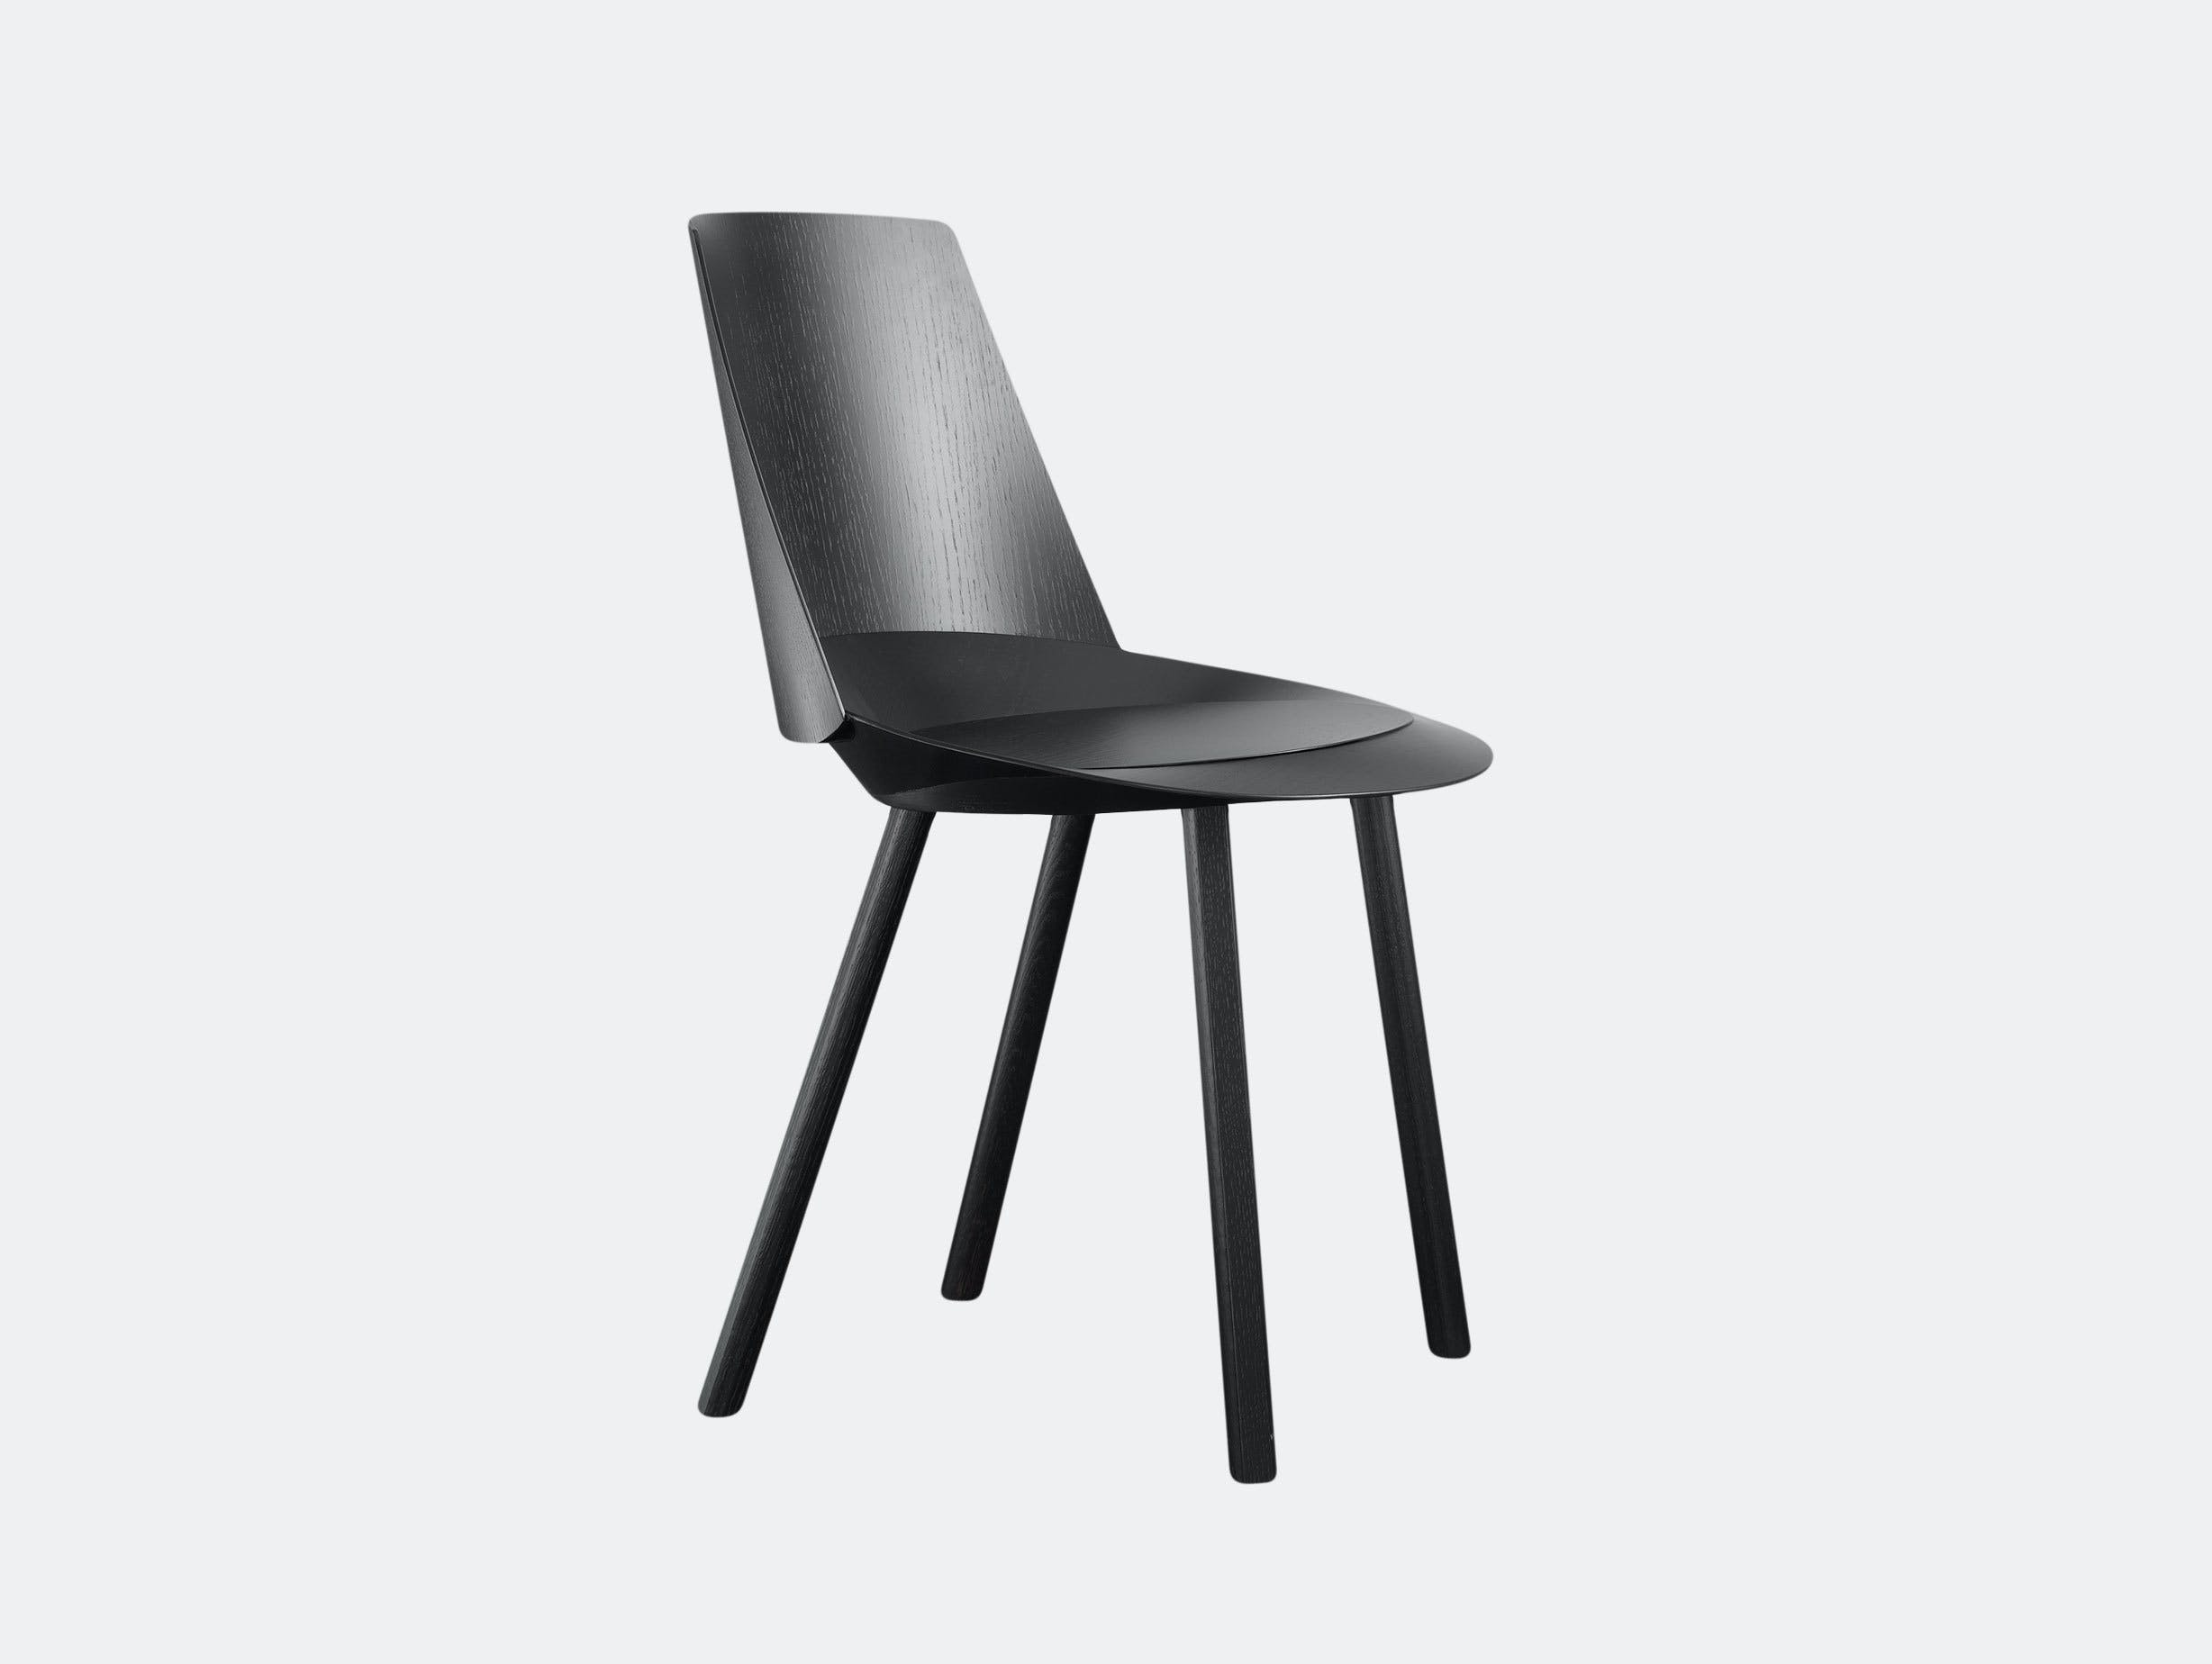 E15 Houdini Chair Black Stefan Diez